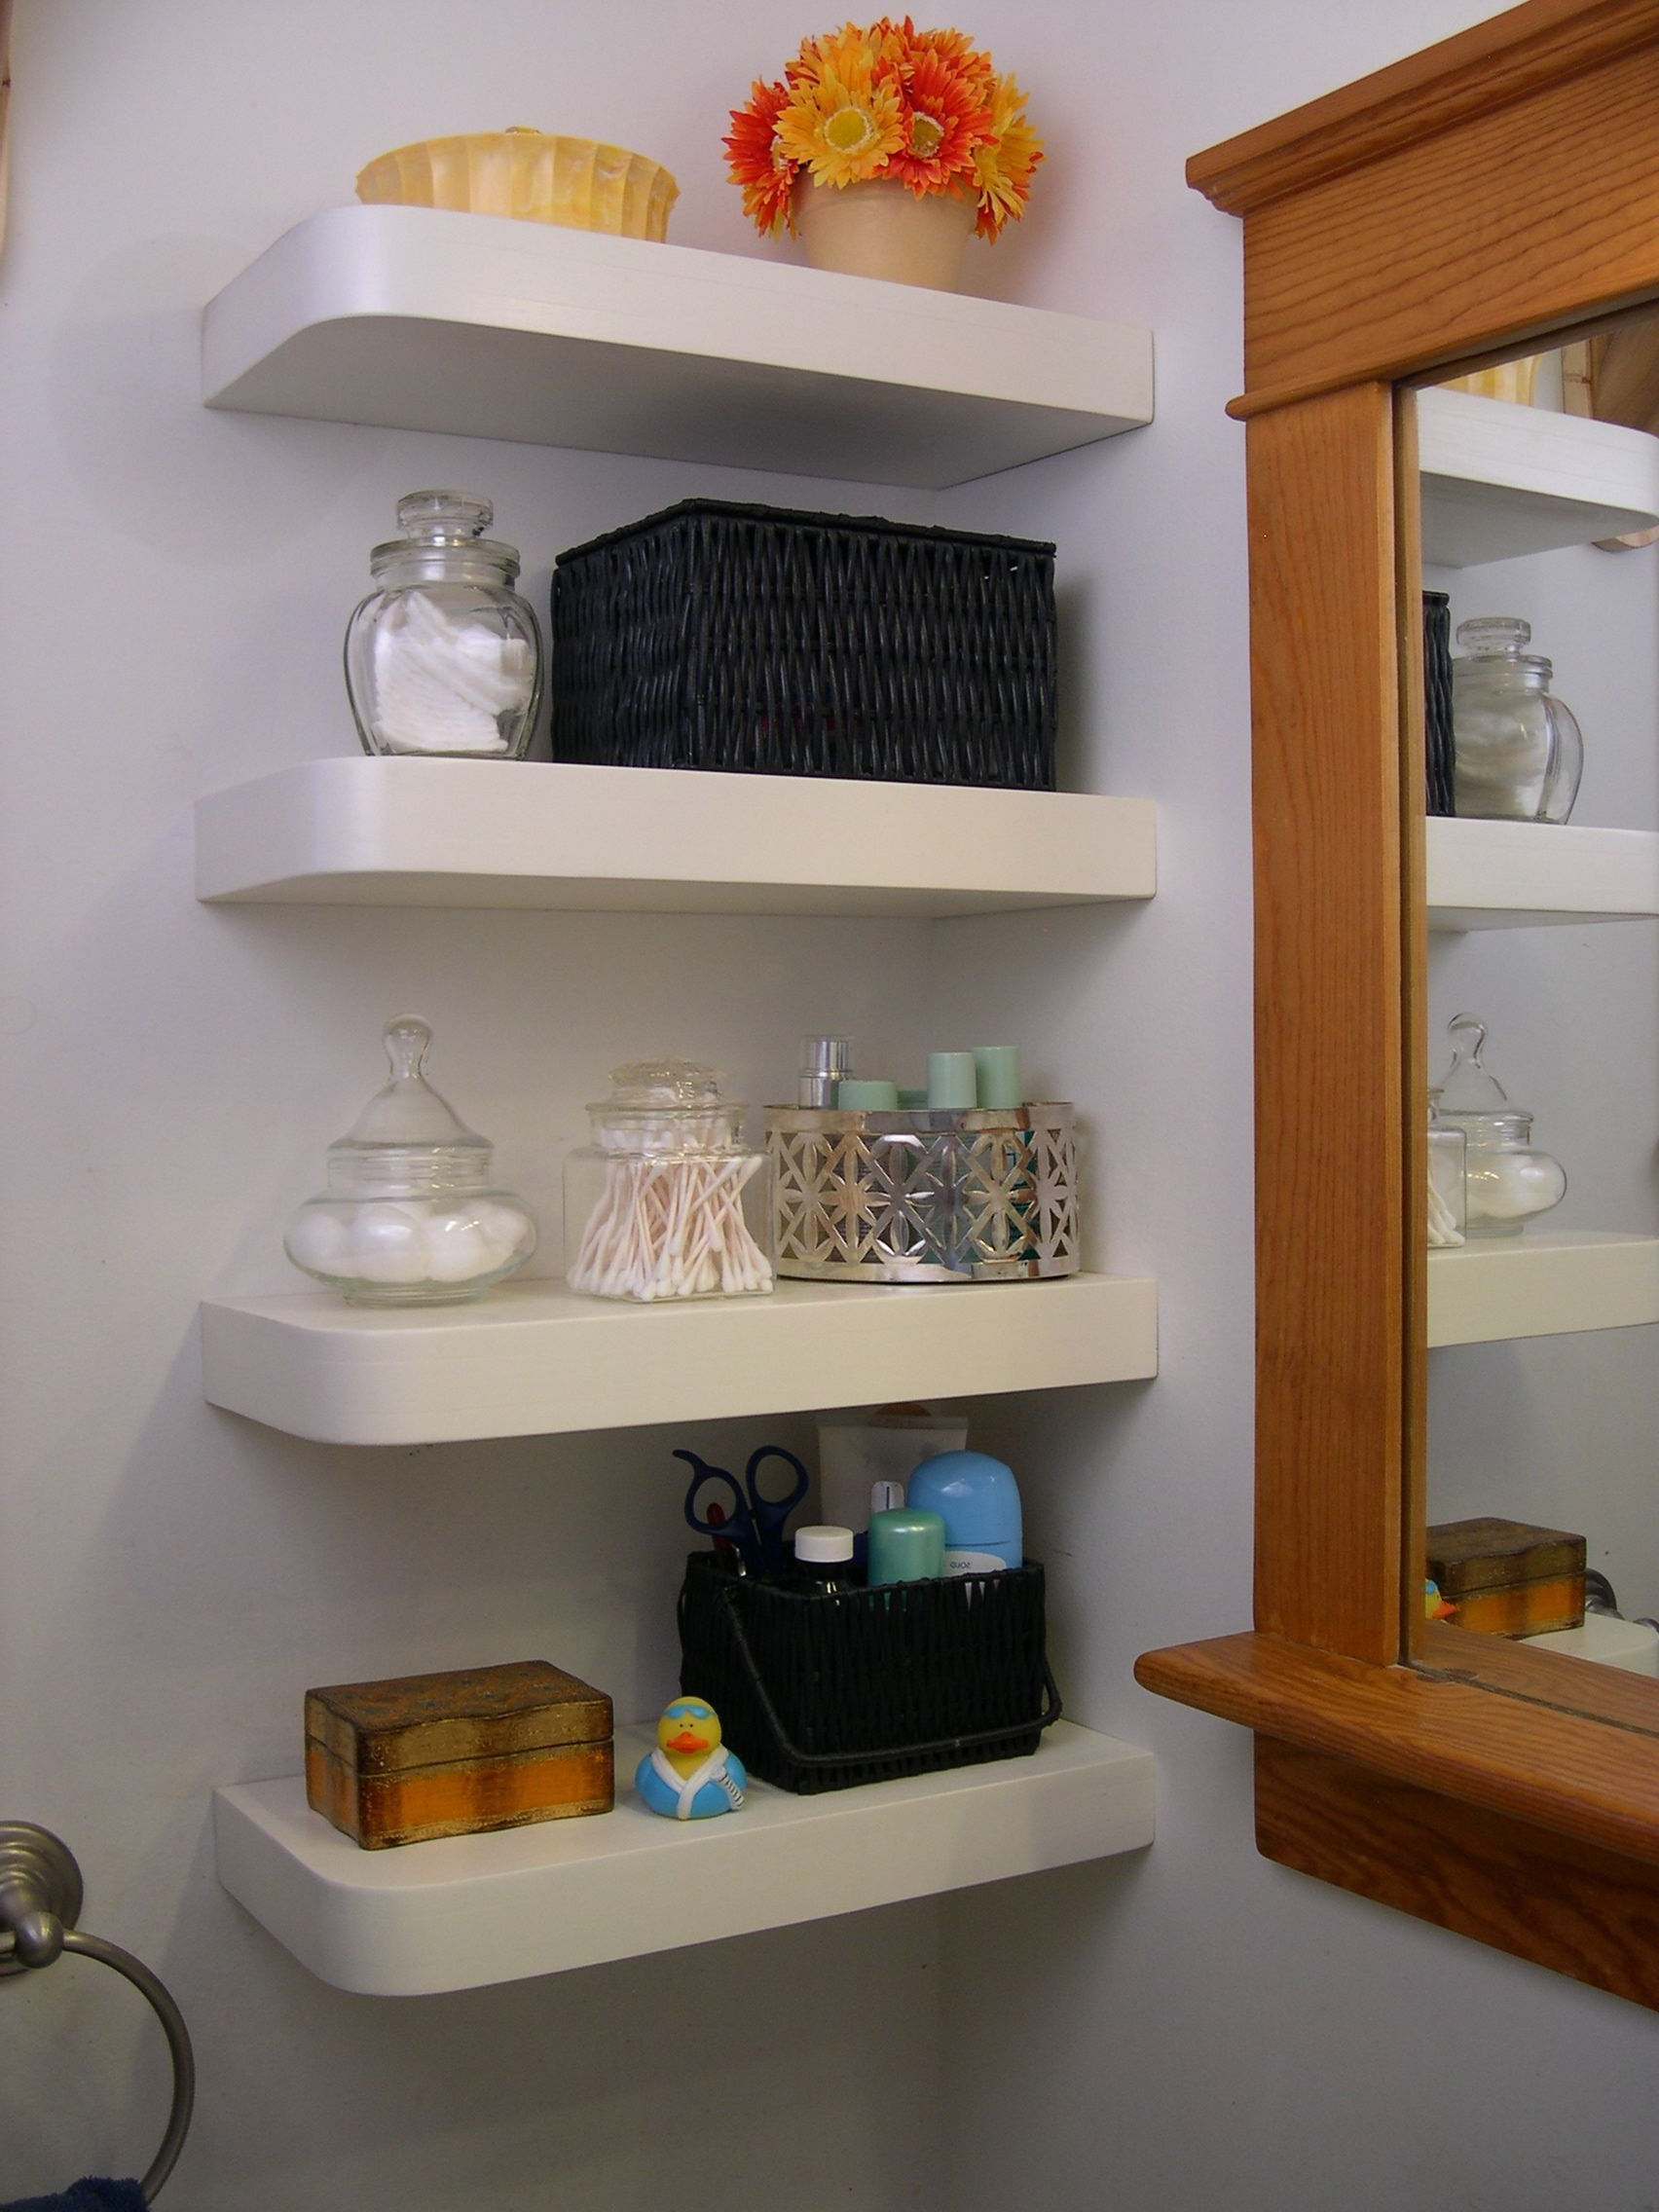 Most Popular Stupendous Useful Tips: Floating Shelf Kitchen Glass Holders Pertaining To Over Tv Shelves (View 5 of 20)